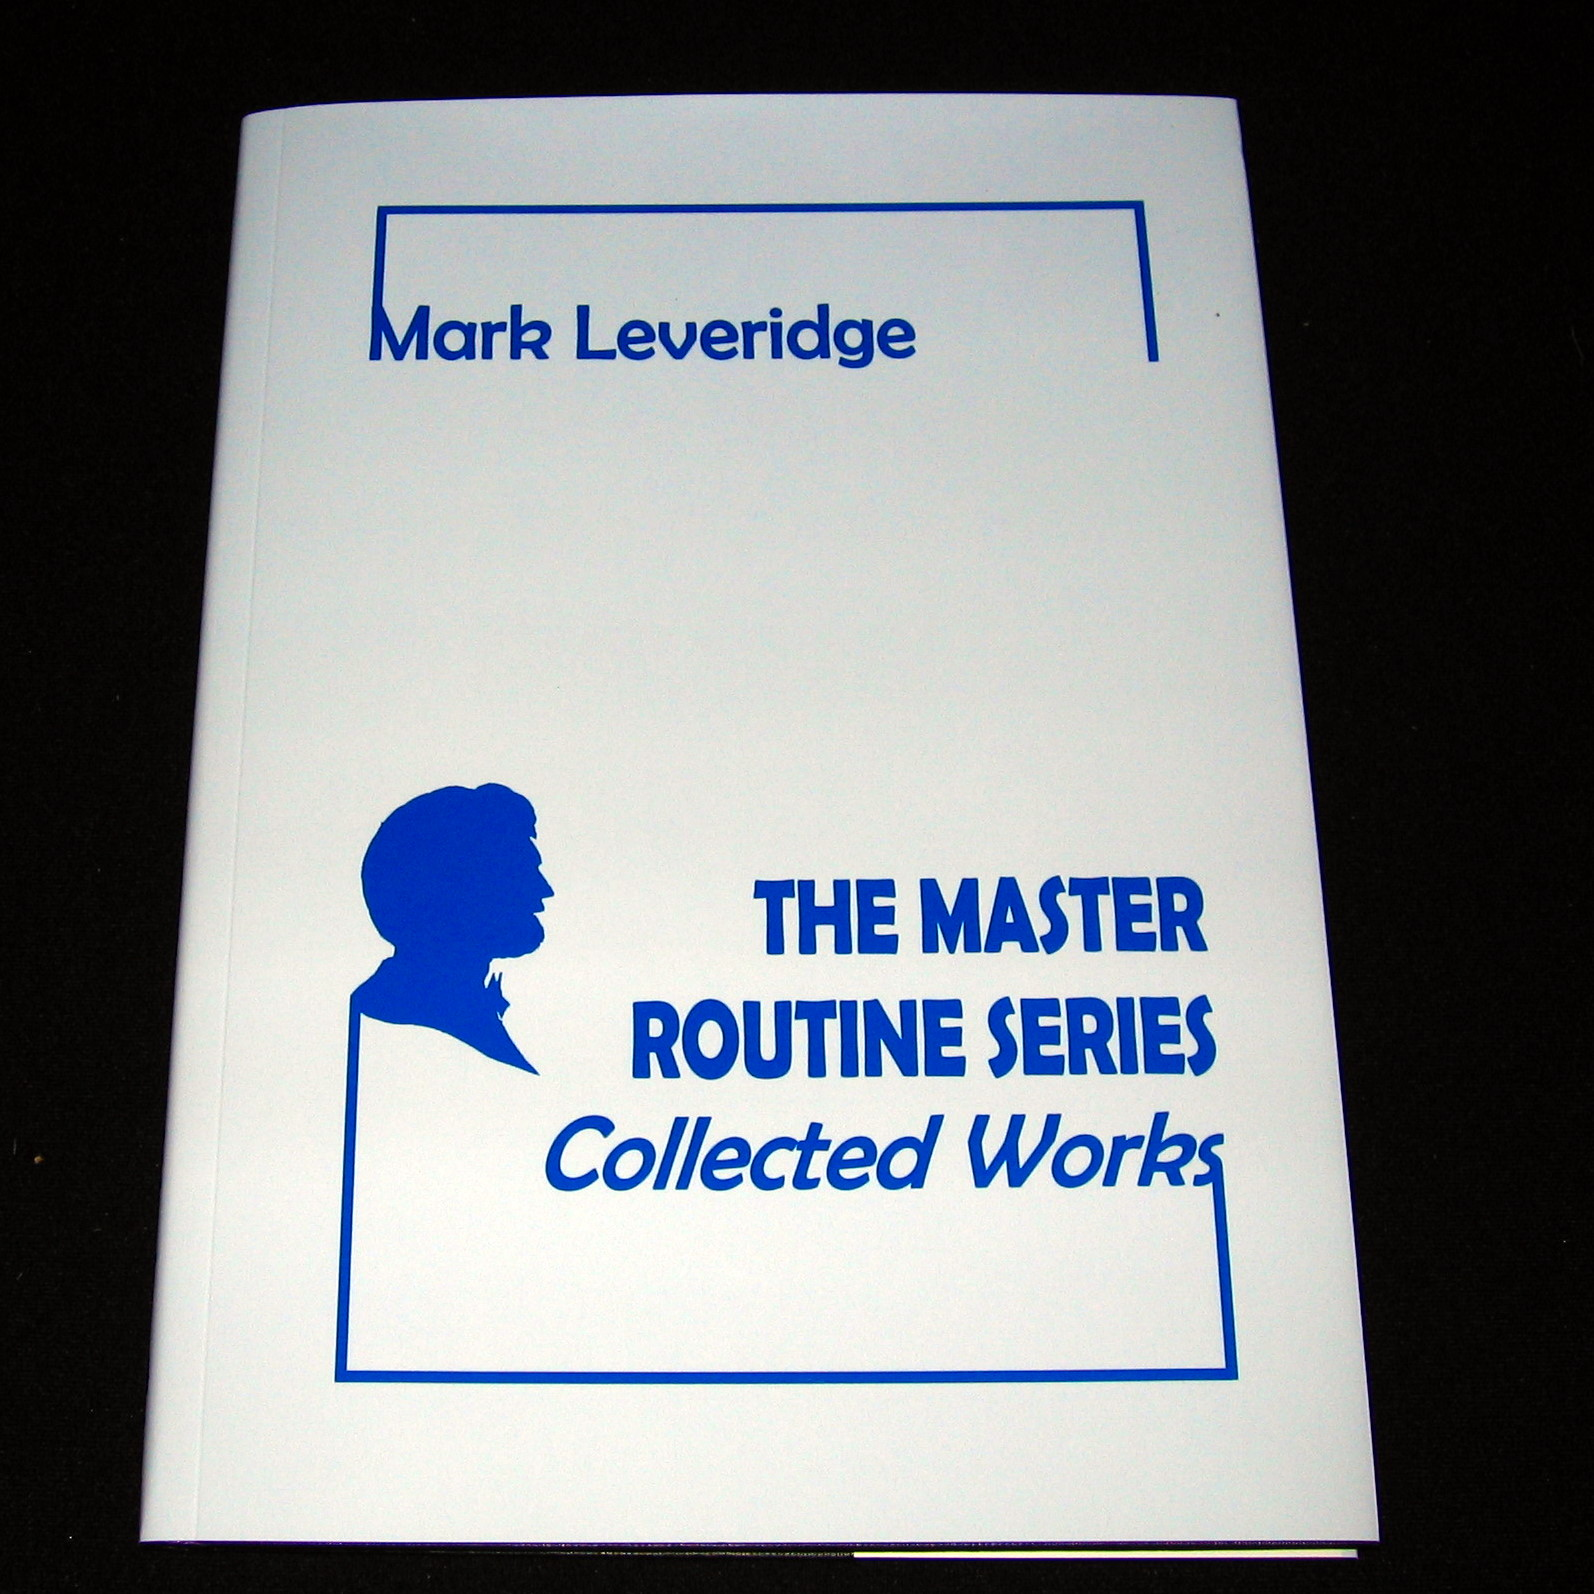 Master Routine Series - Collected Works by Mark Leveridge